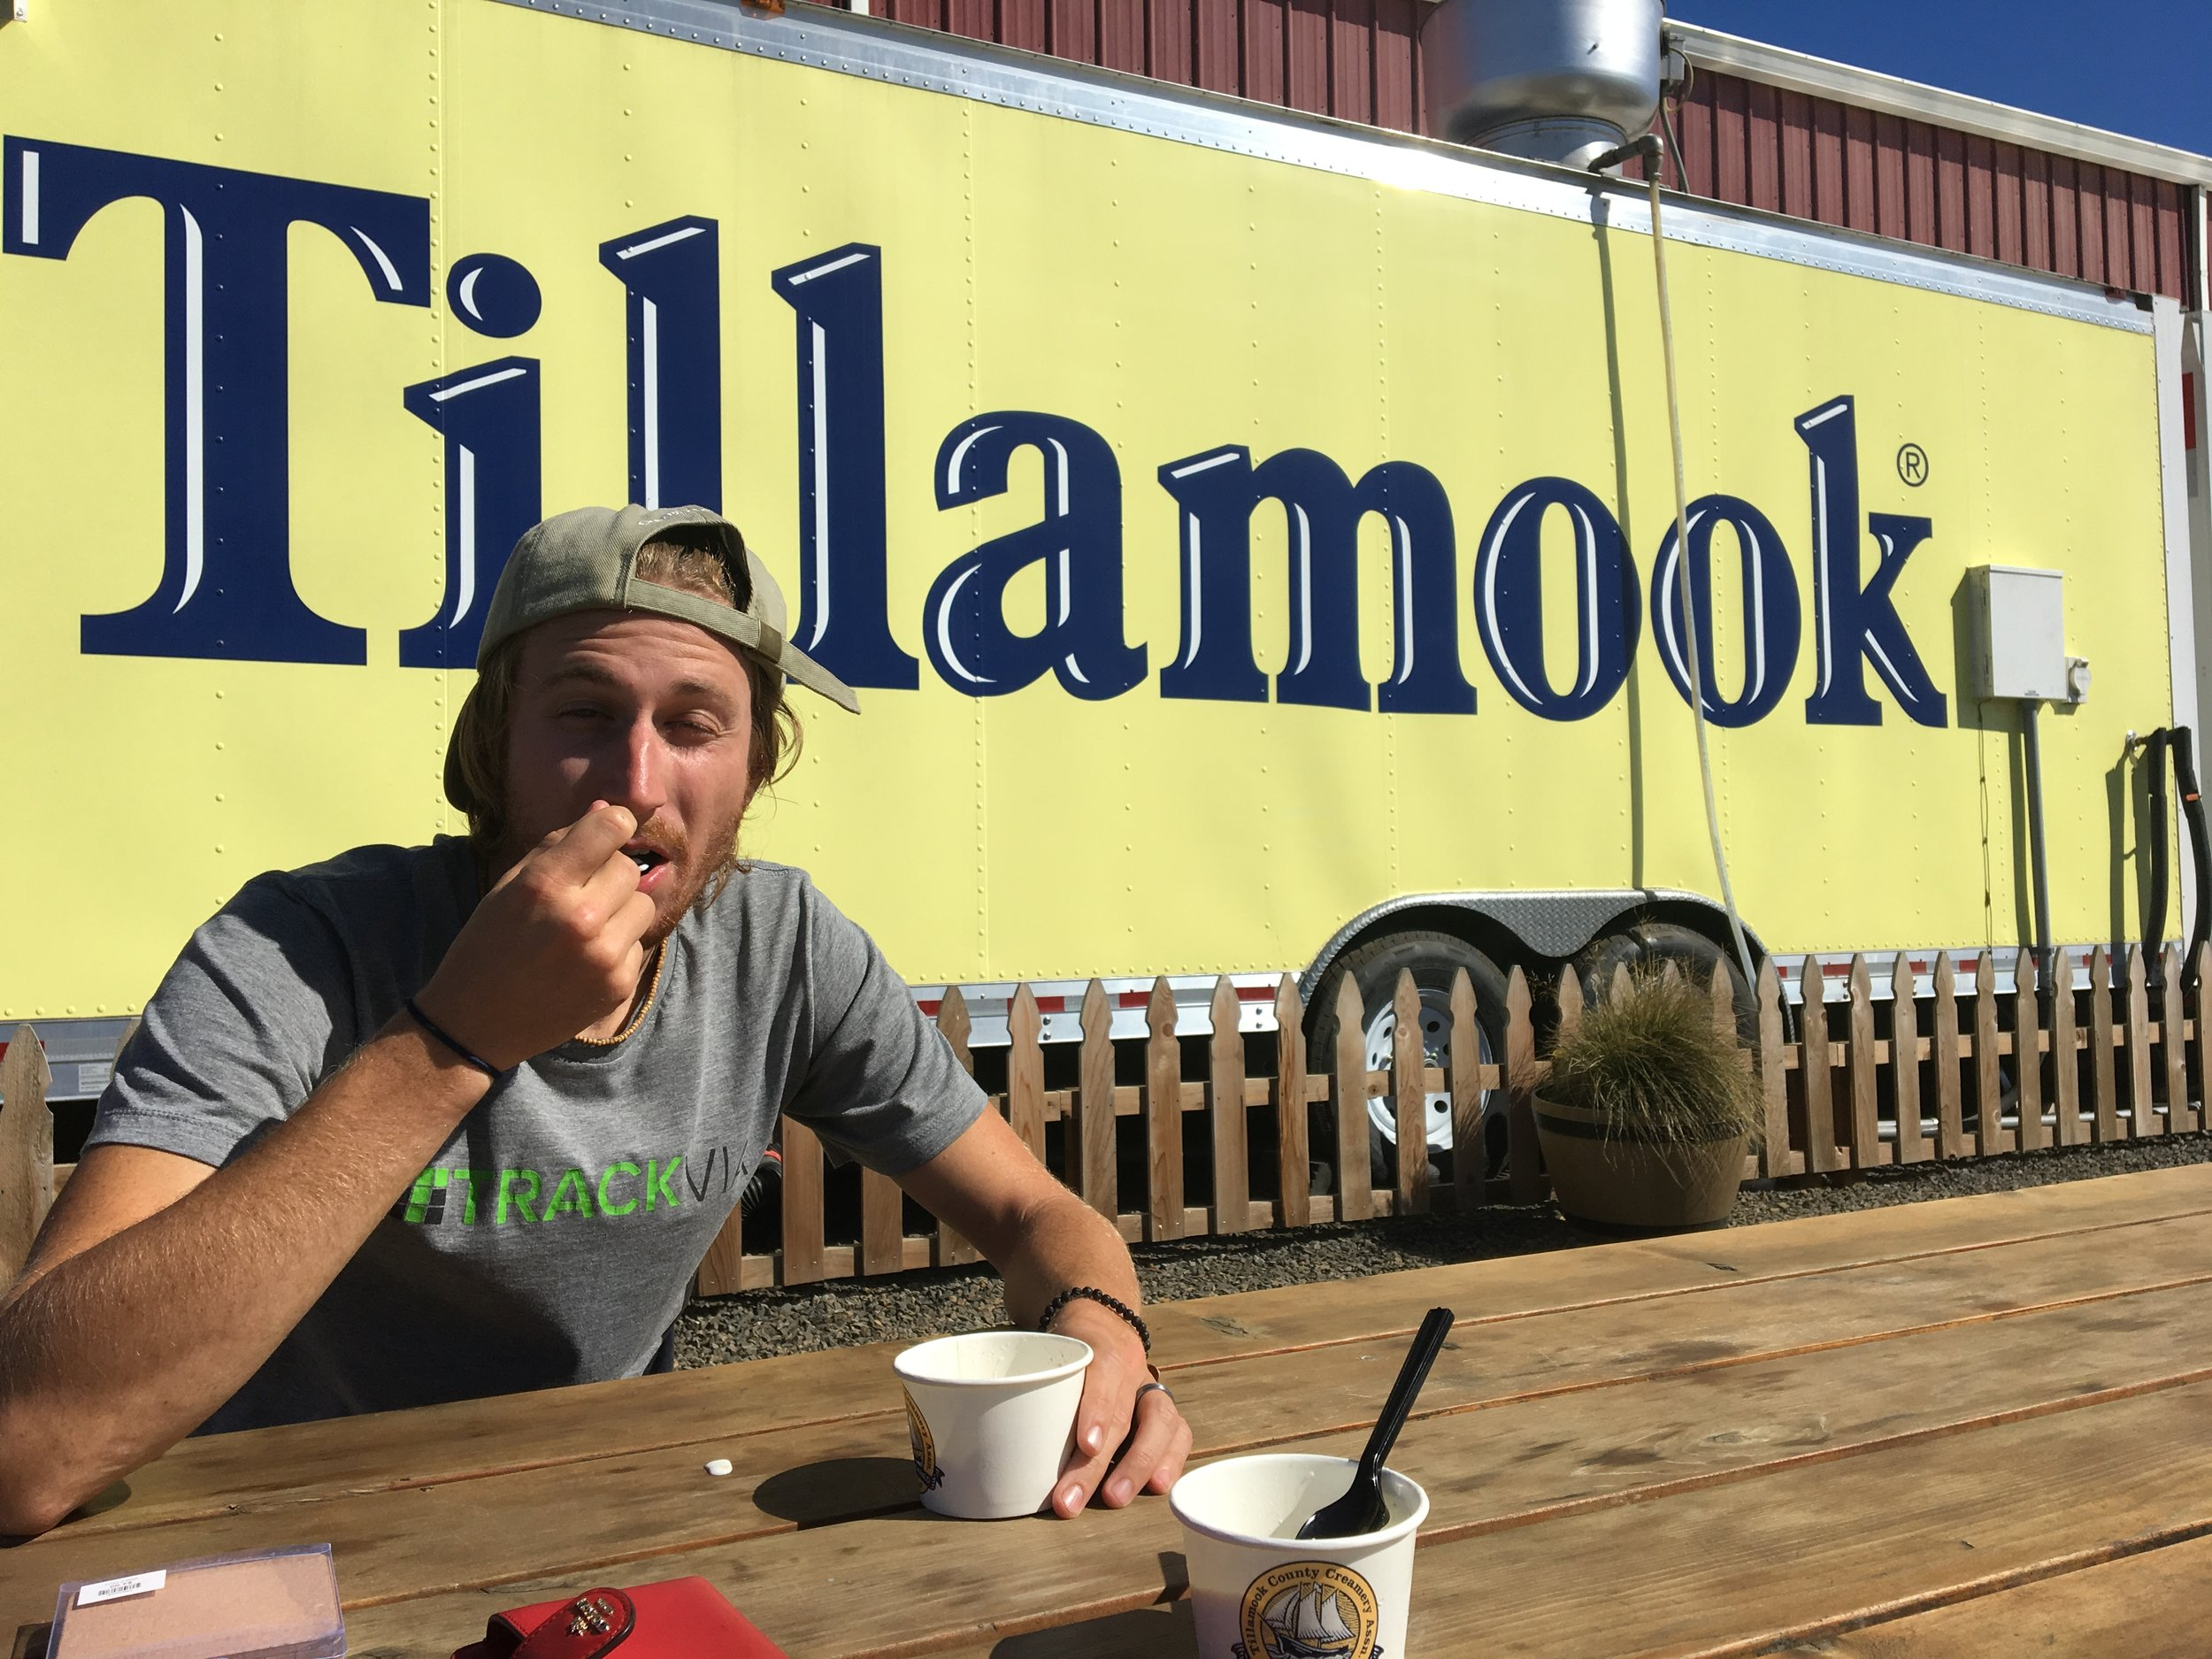 The most attractive picture of Derrick enjoying some Tillamook Ice Cream!